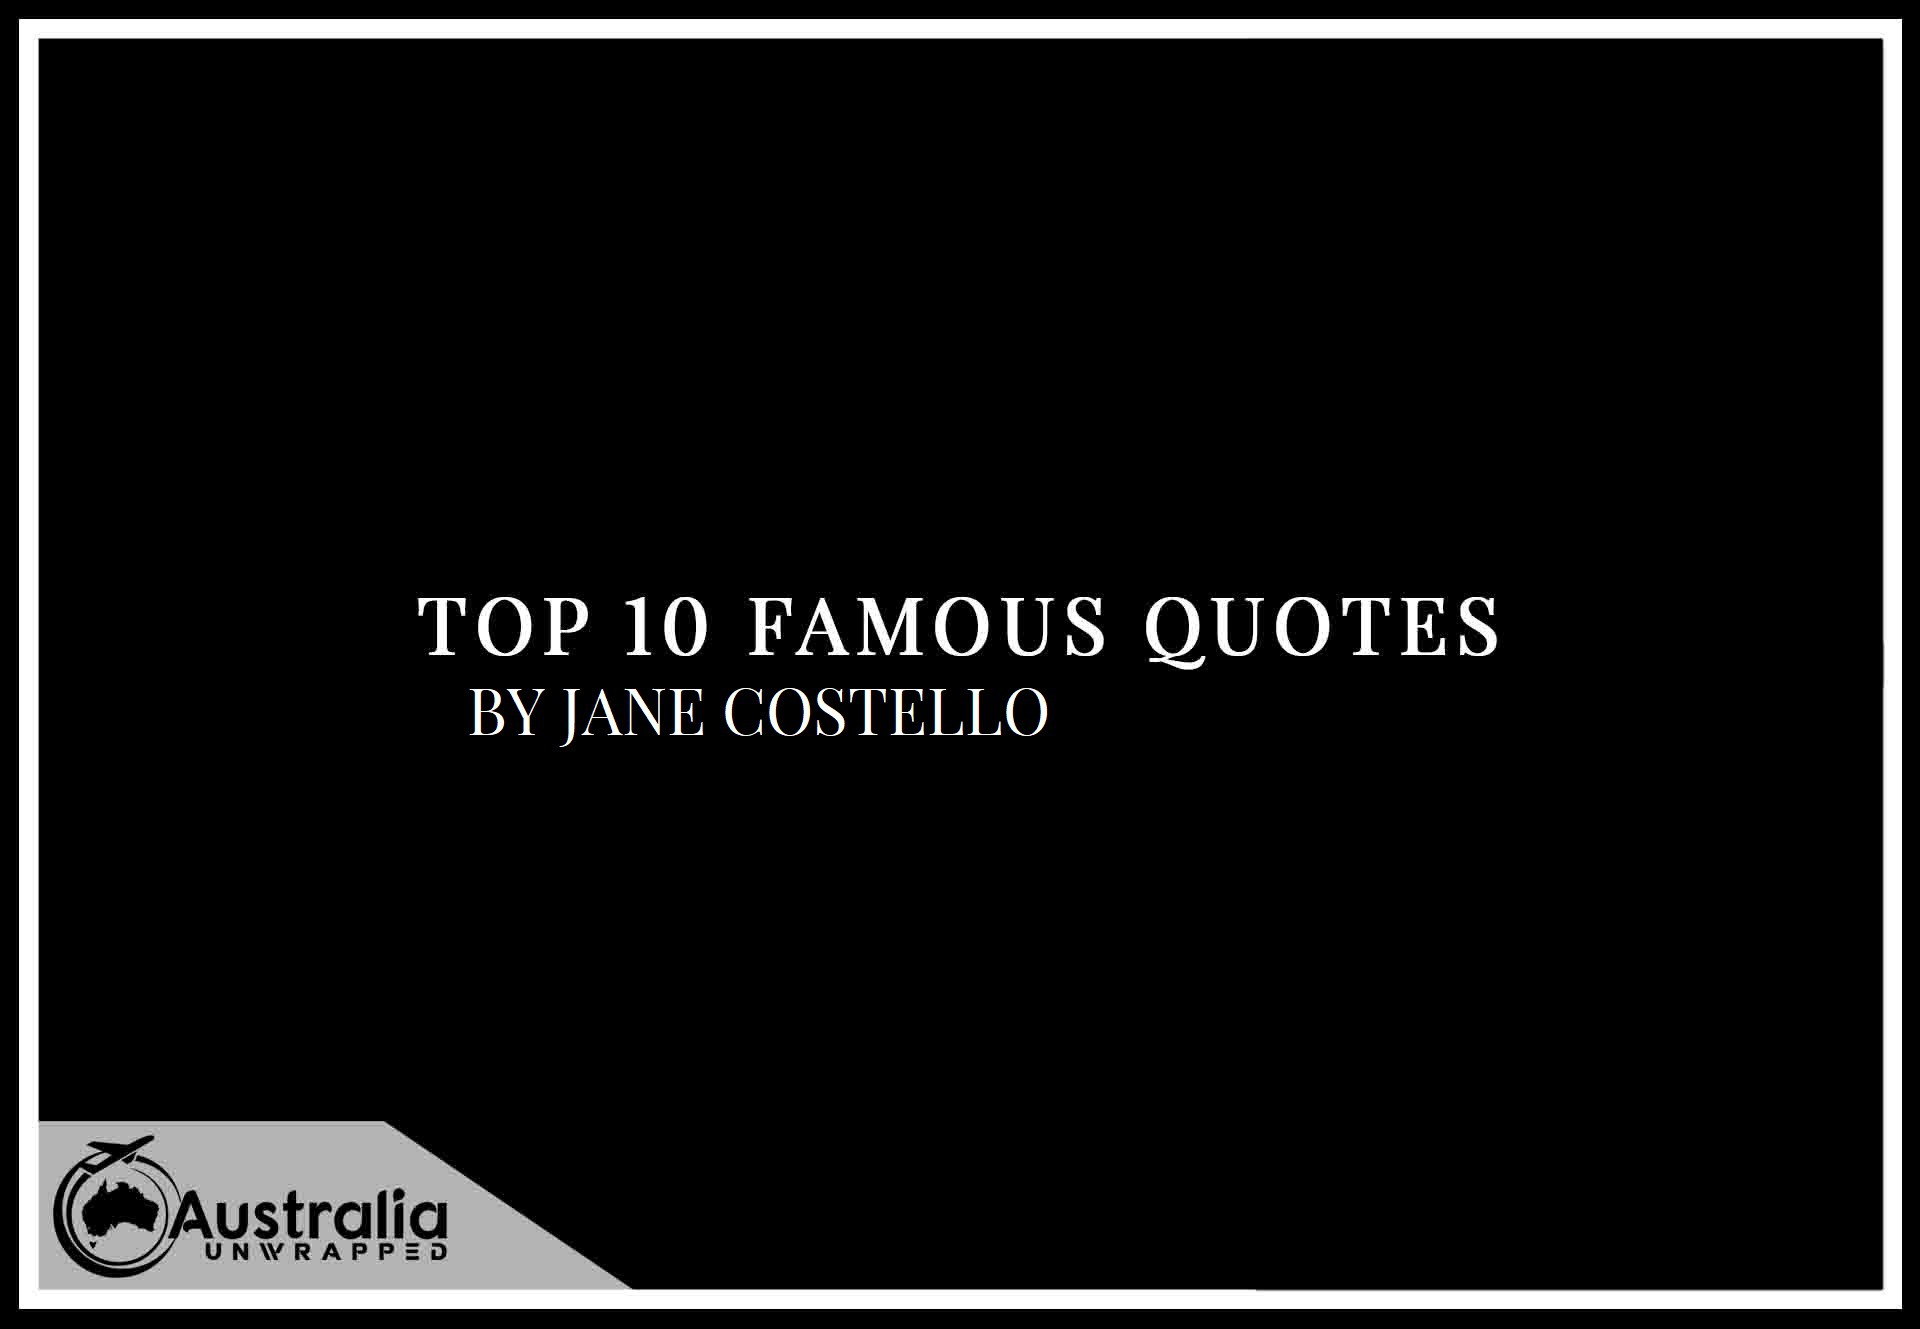 Top 10 Famous Quotes by Author Jane Costello